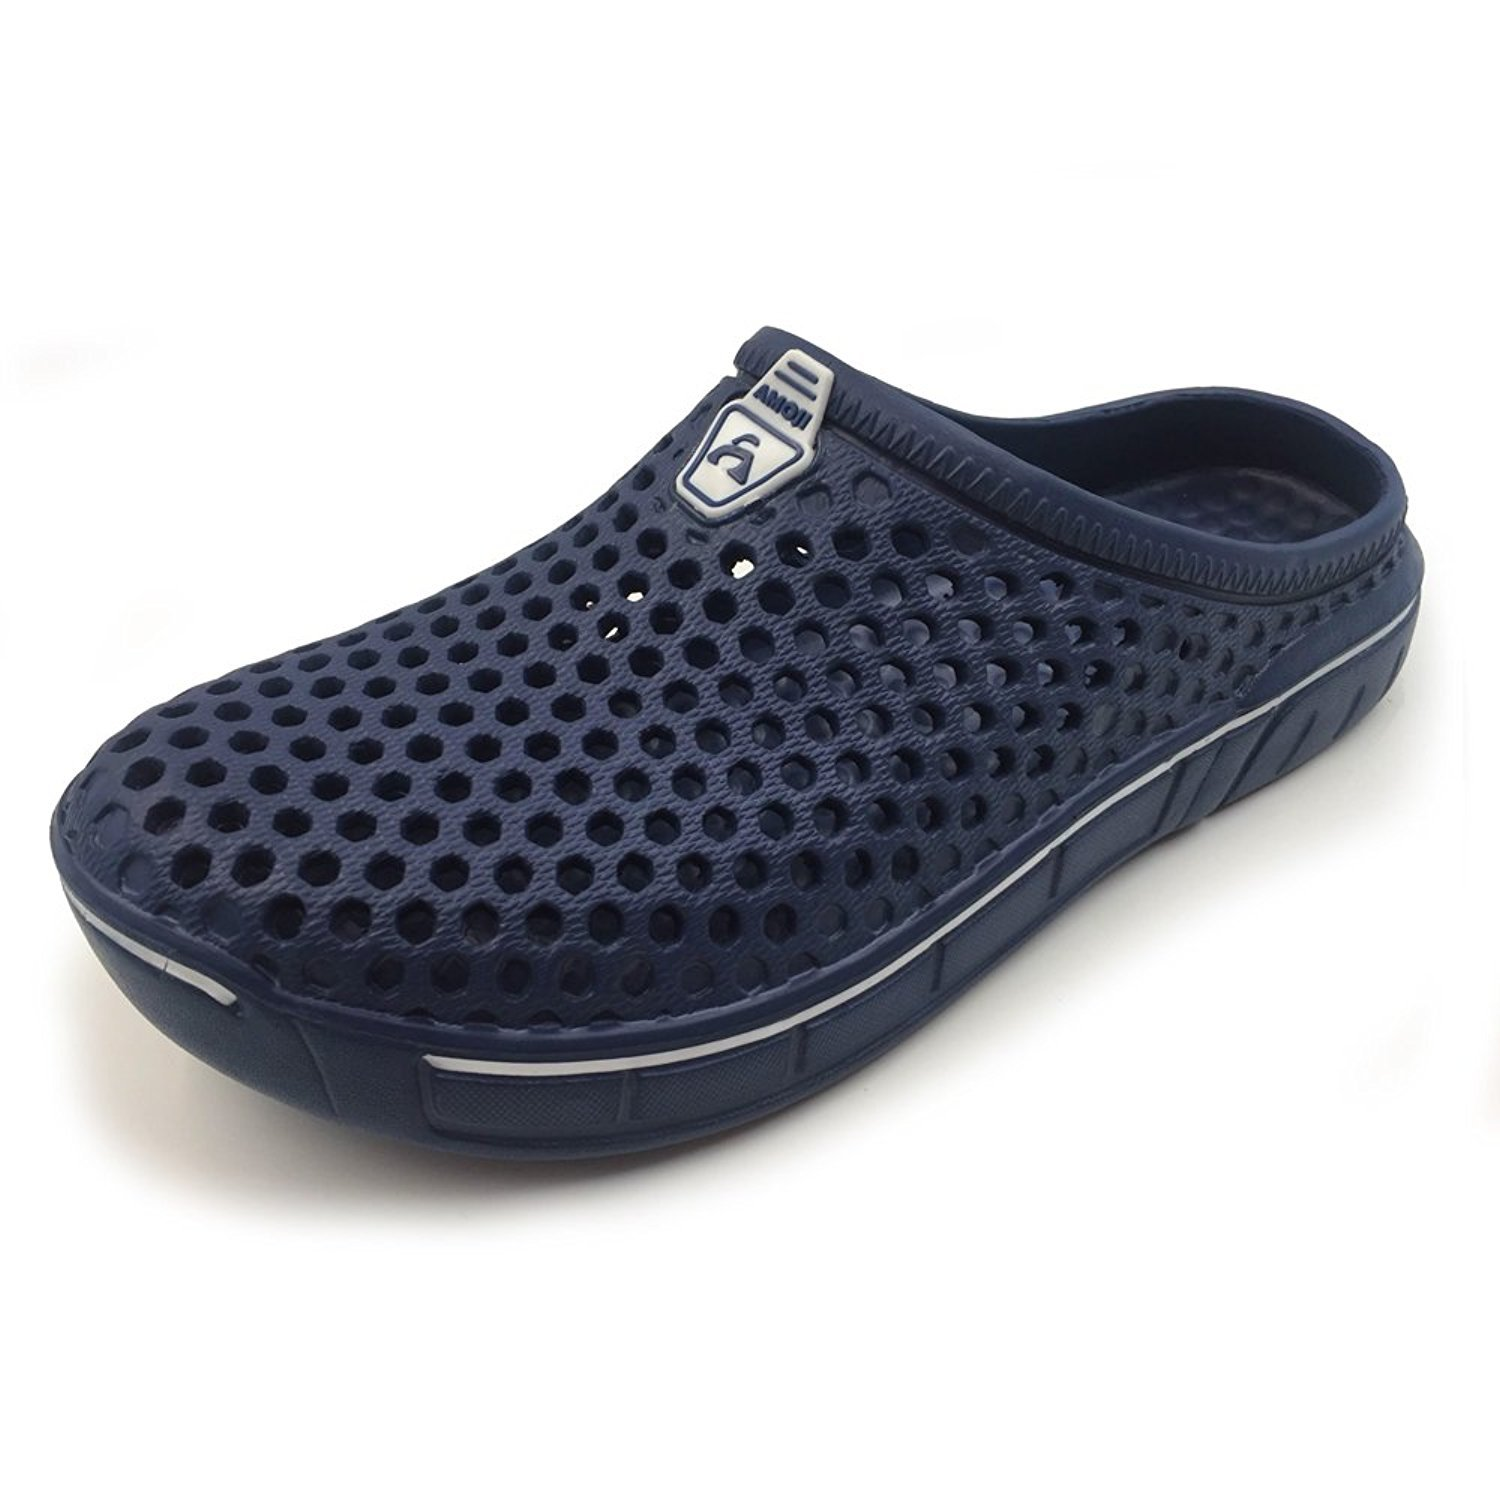 Amoji Unisex Garden Clogs Shoes Sandals House Slippers Room Shoes Indoor Outdoor Shower Shoes Quick Dry Home Summer Walking Women Men Ladies AY161 Navy 12US W/10US M